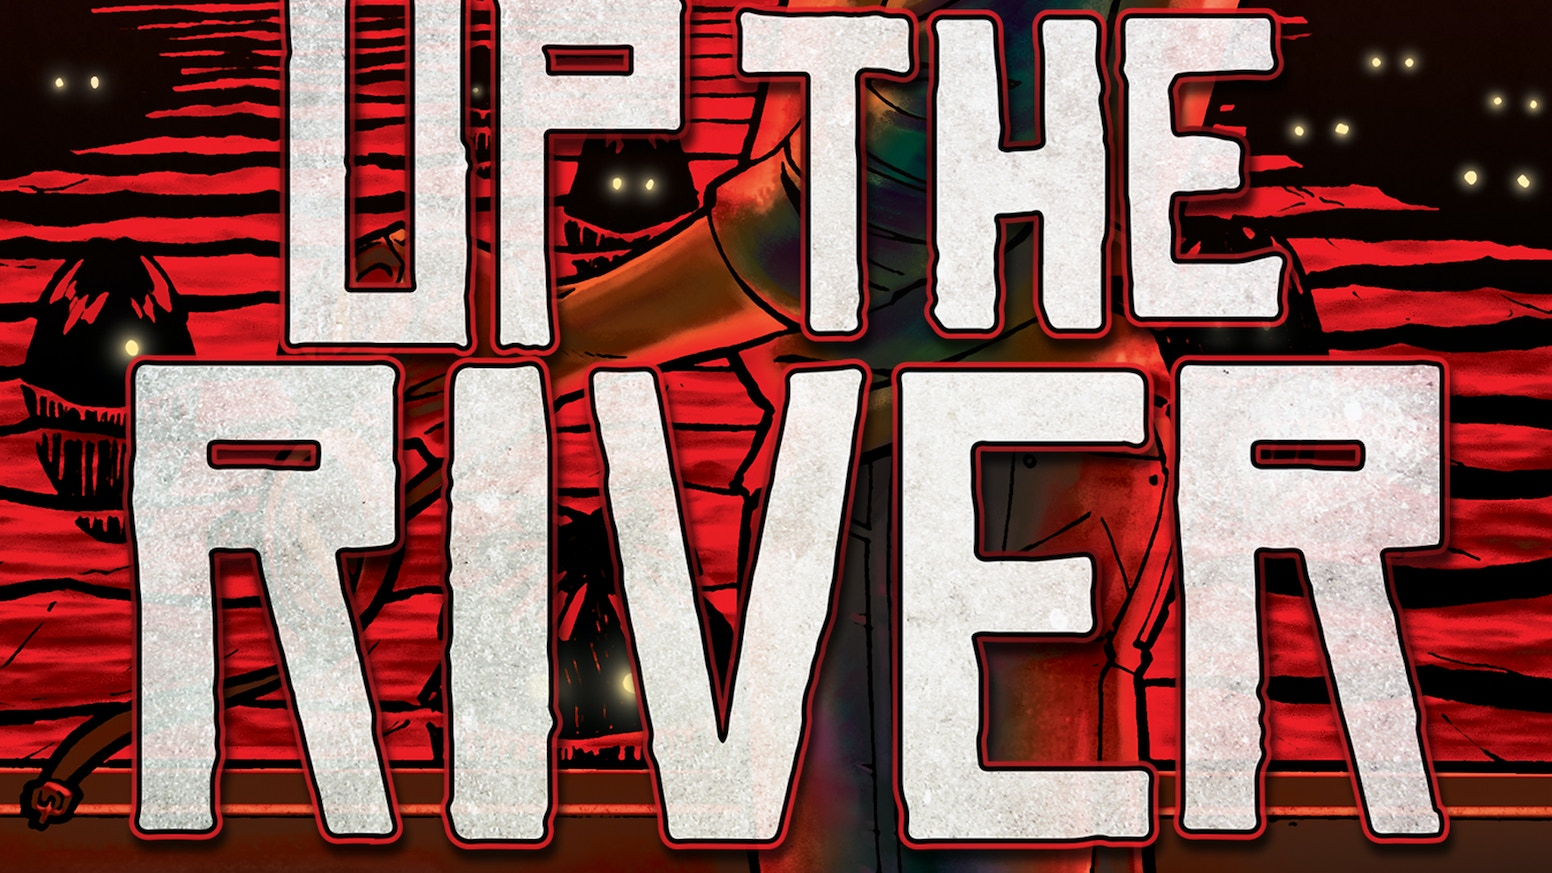 Fully funded & 2 stretch goals reached on the Up the River #1 comic book campaign! THANK YOU ALL!